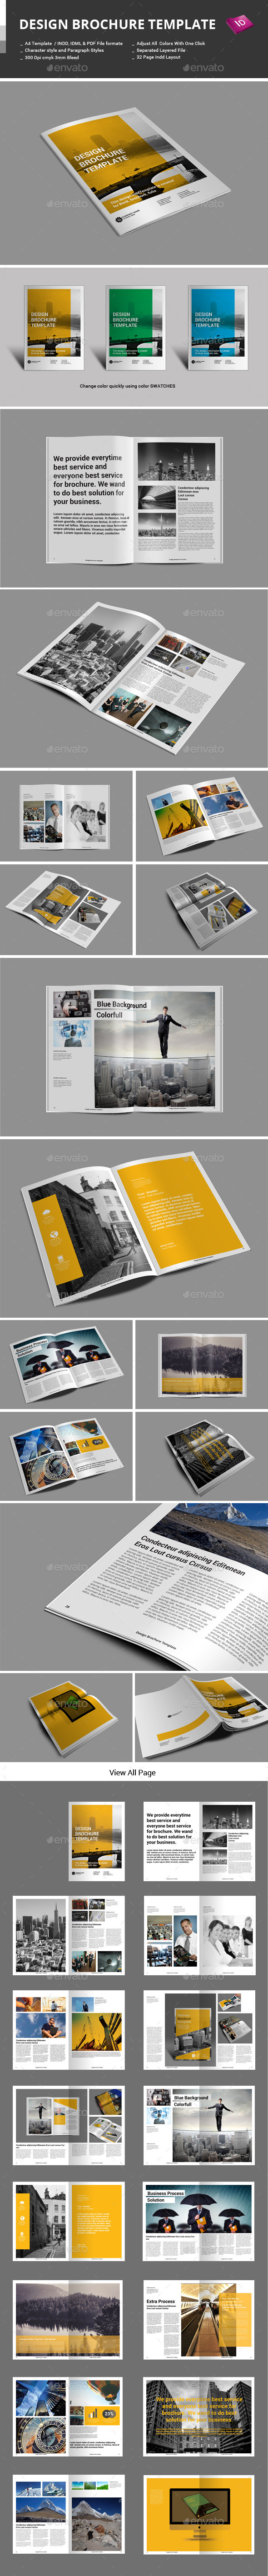 Design Brochure Template - Corporate Brochures